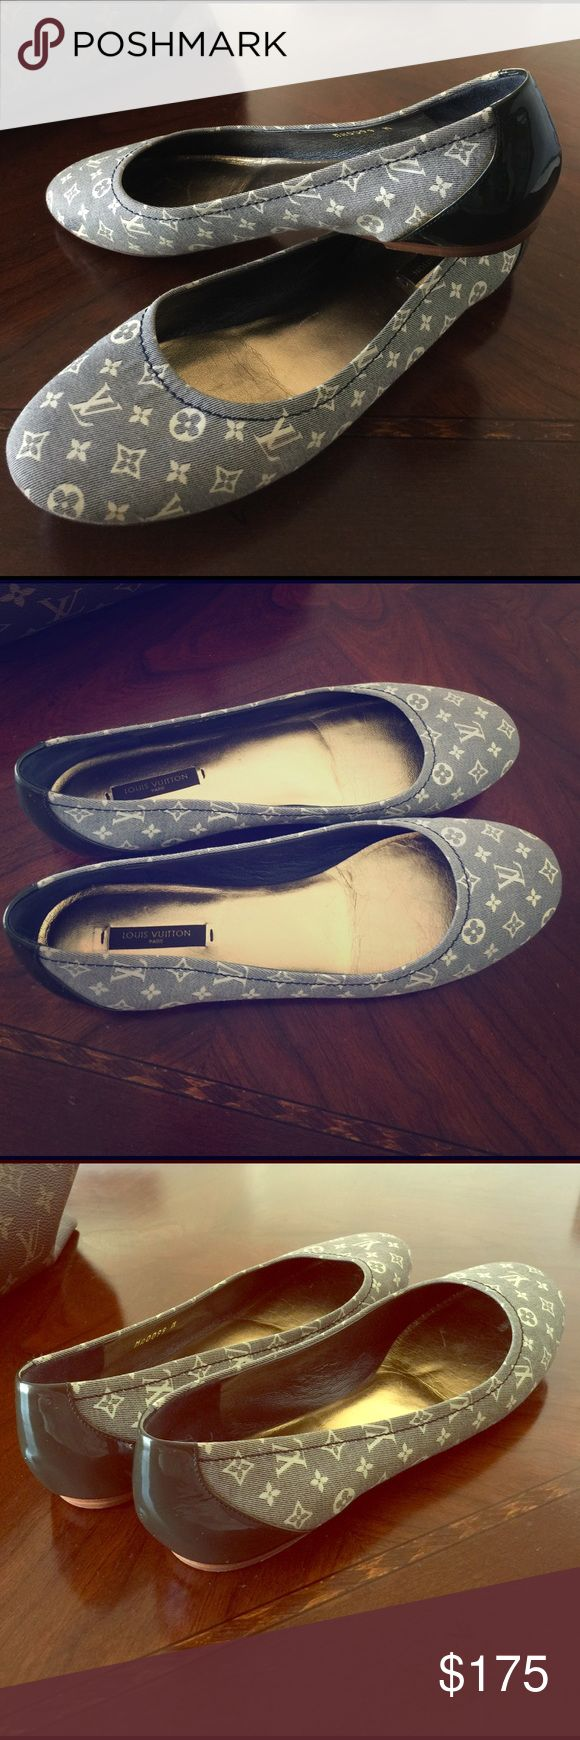 Louis Vuitton flats Used authentic Louis Vuitton ballet flats.  Navy with off white monogram.  Kept in good condition.  Sorry, box and dust bag no longer available. Louis Vuitton Shoes Flats & Loafers